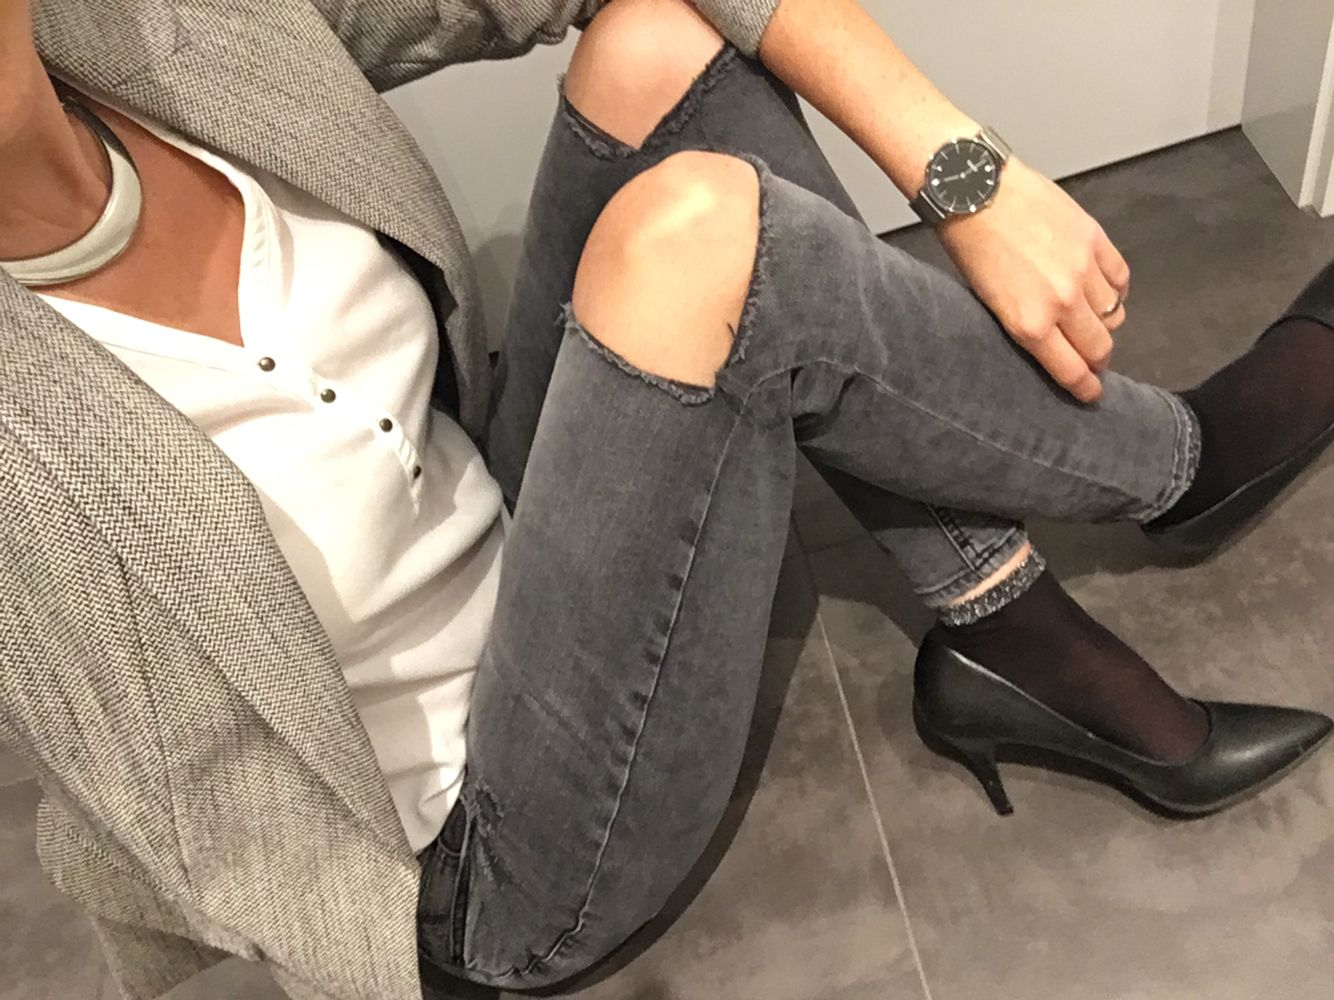 Shade of grey • fall outfit • work office • classy